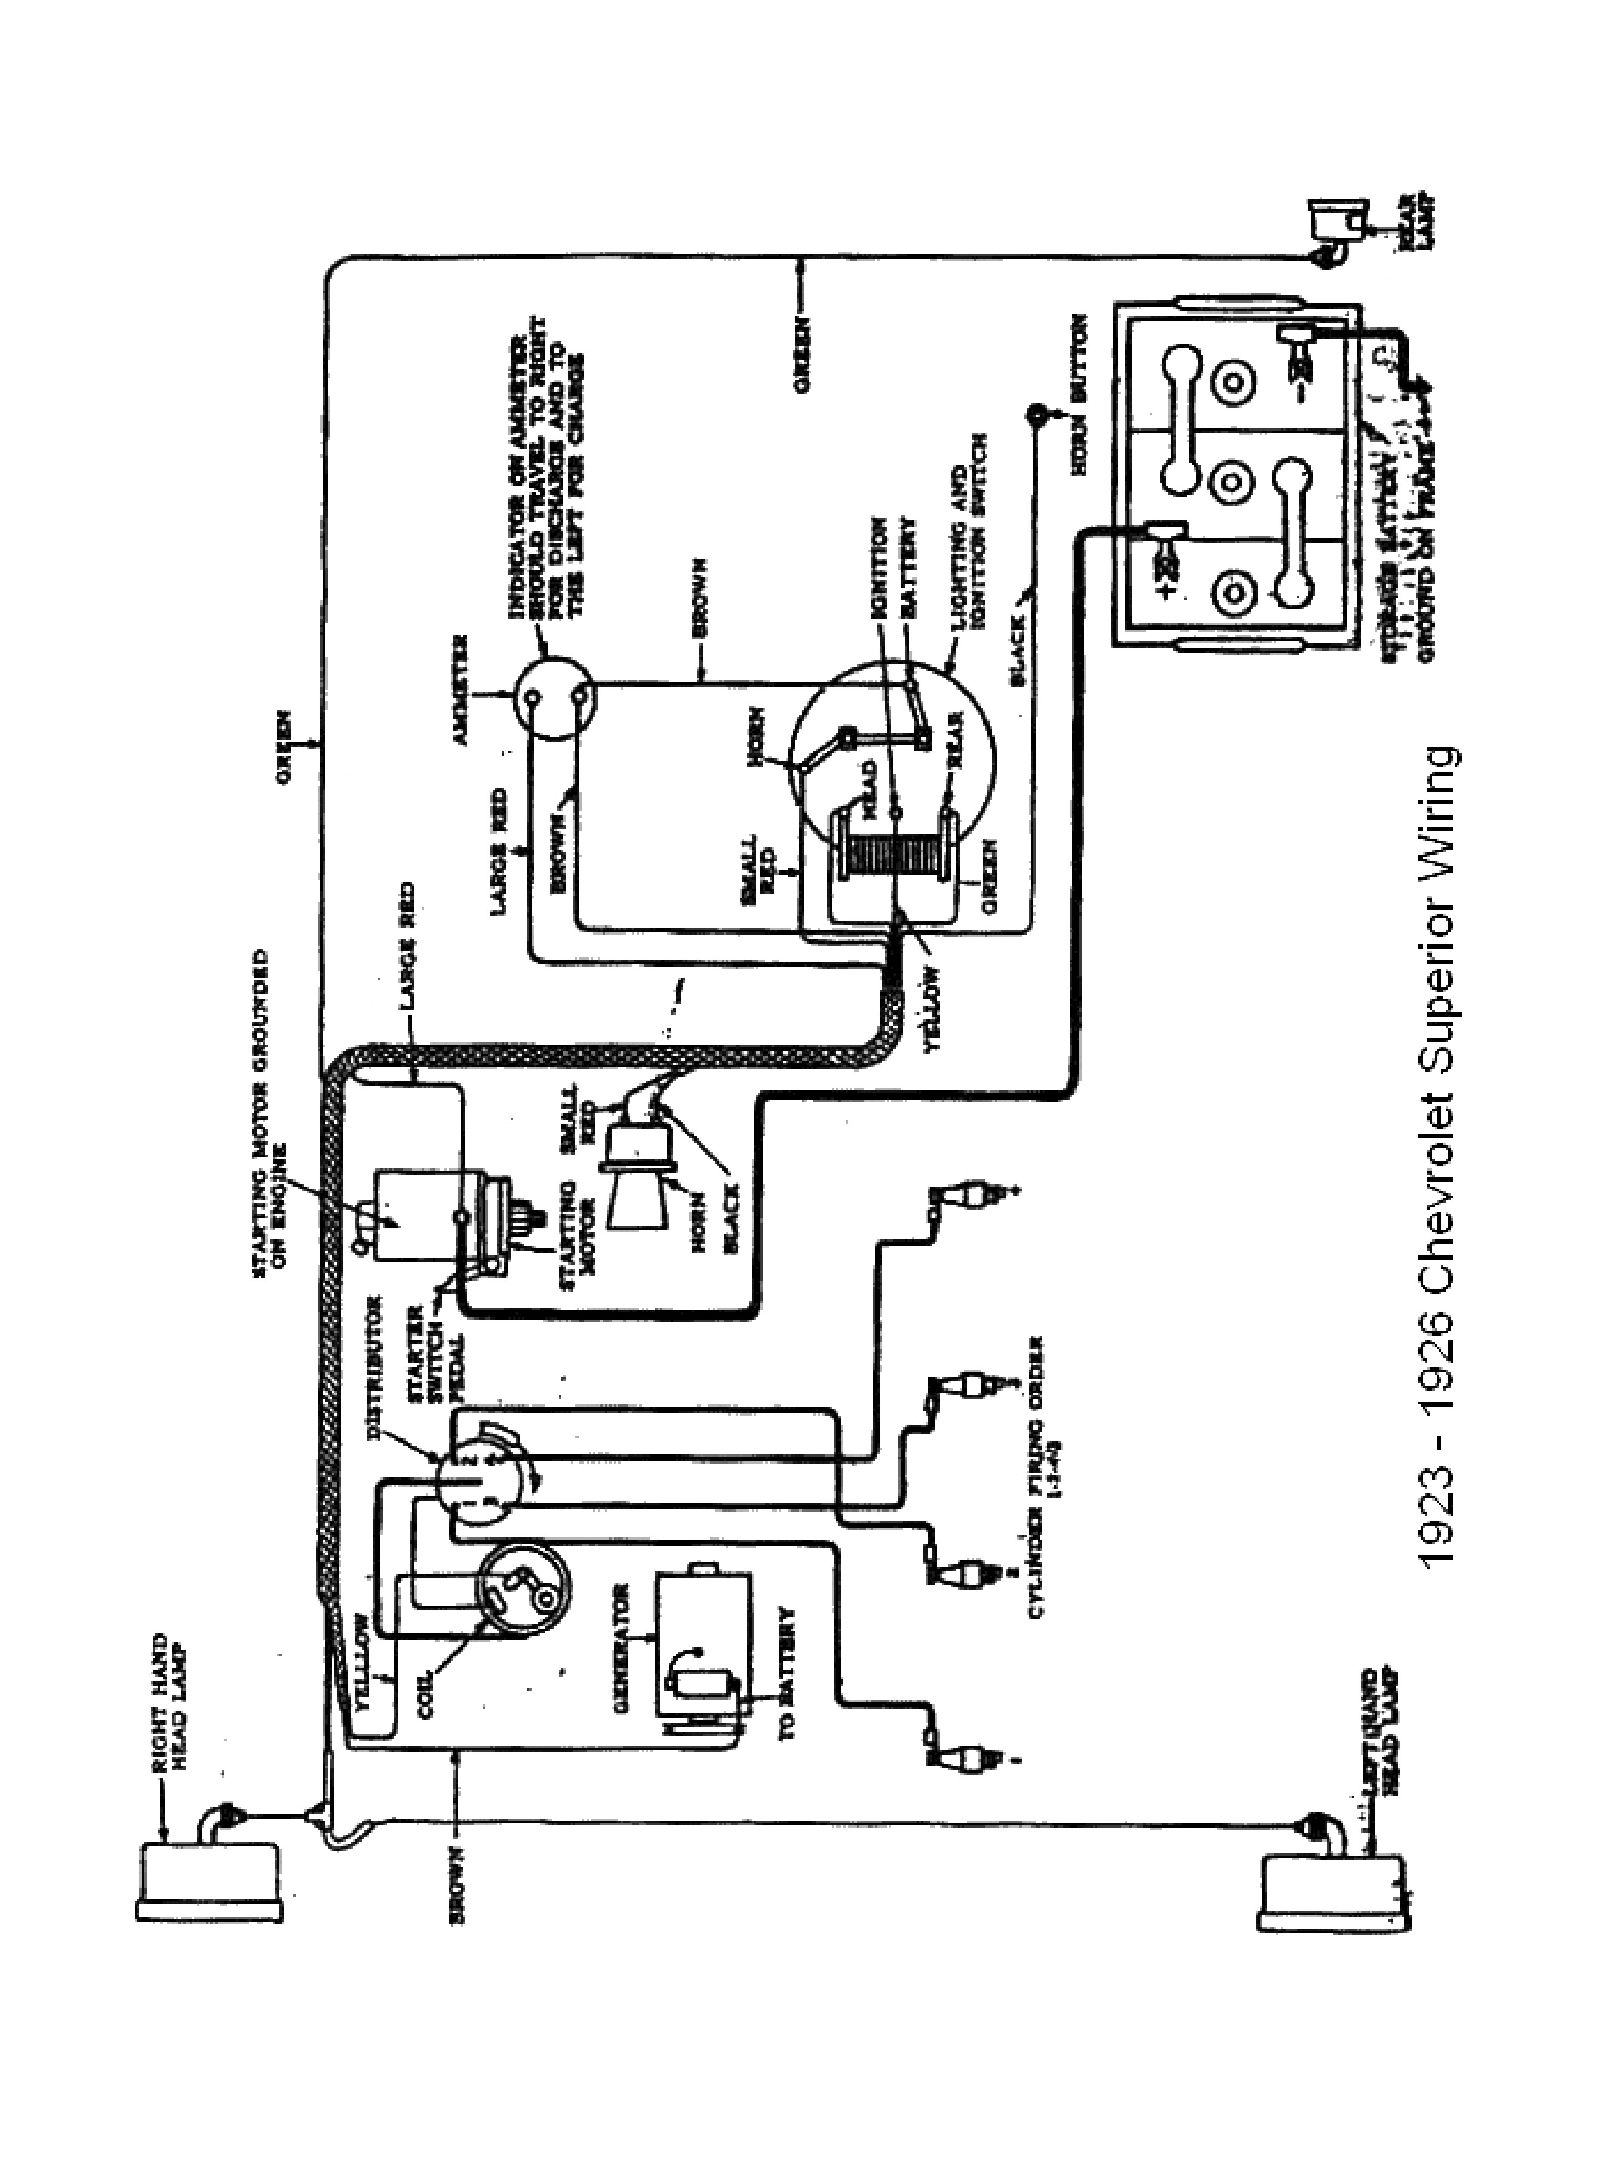 chevy wiring diagrams GMC Brake Light Wiring Diagram 1923 superior model 1923 superior model